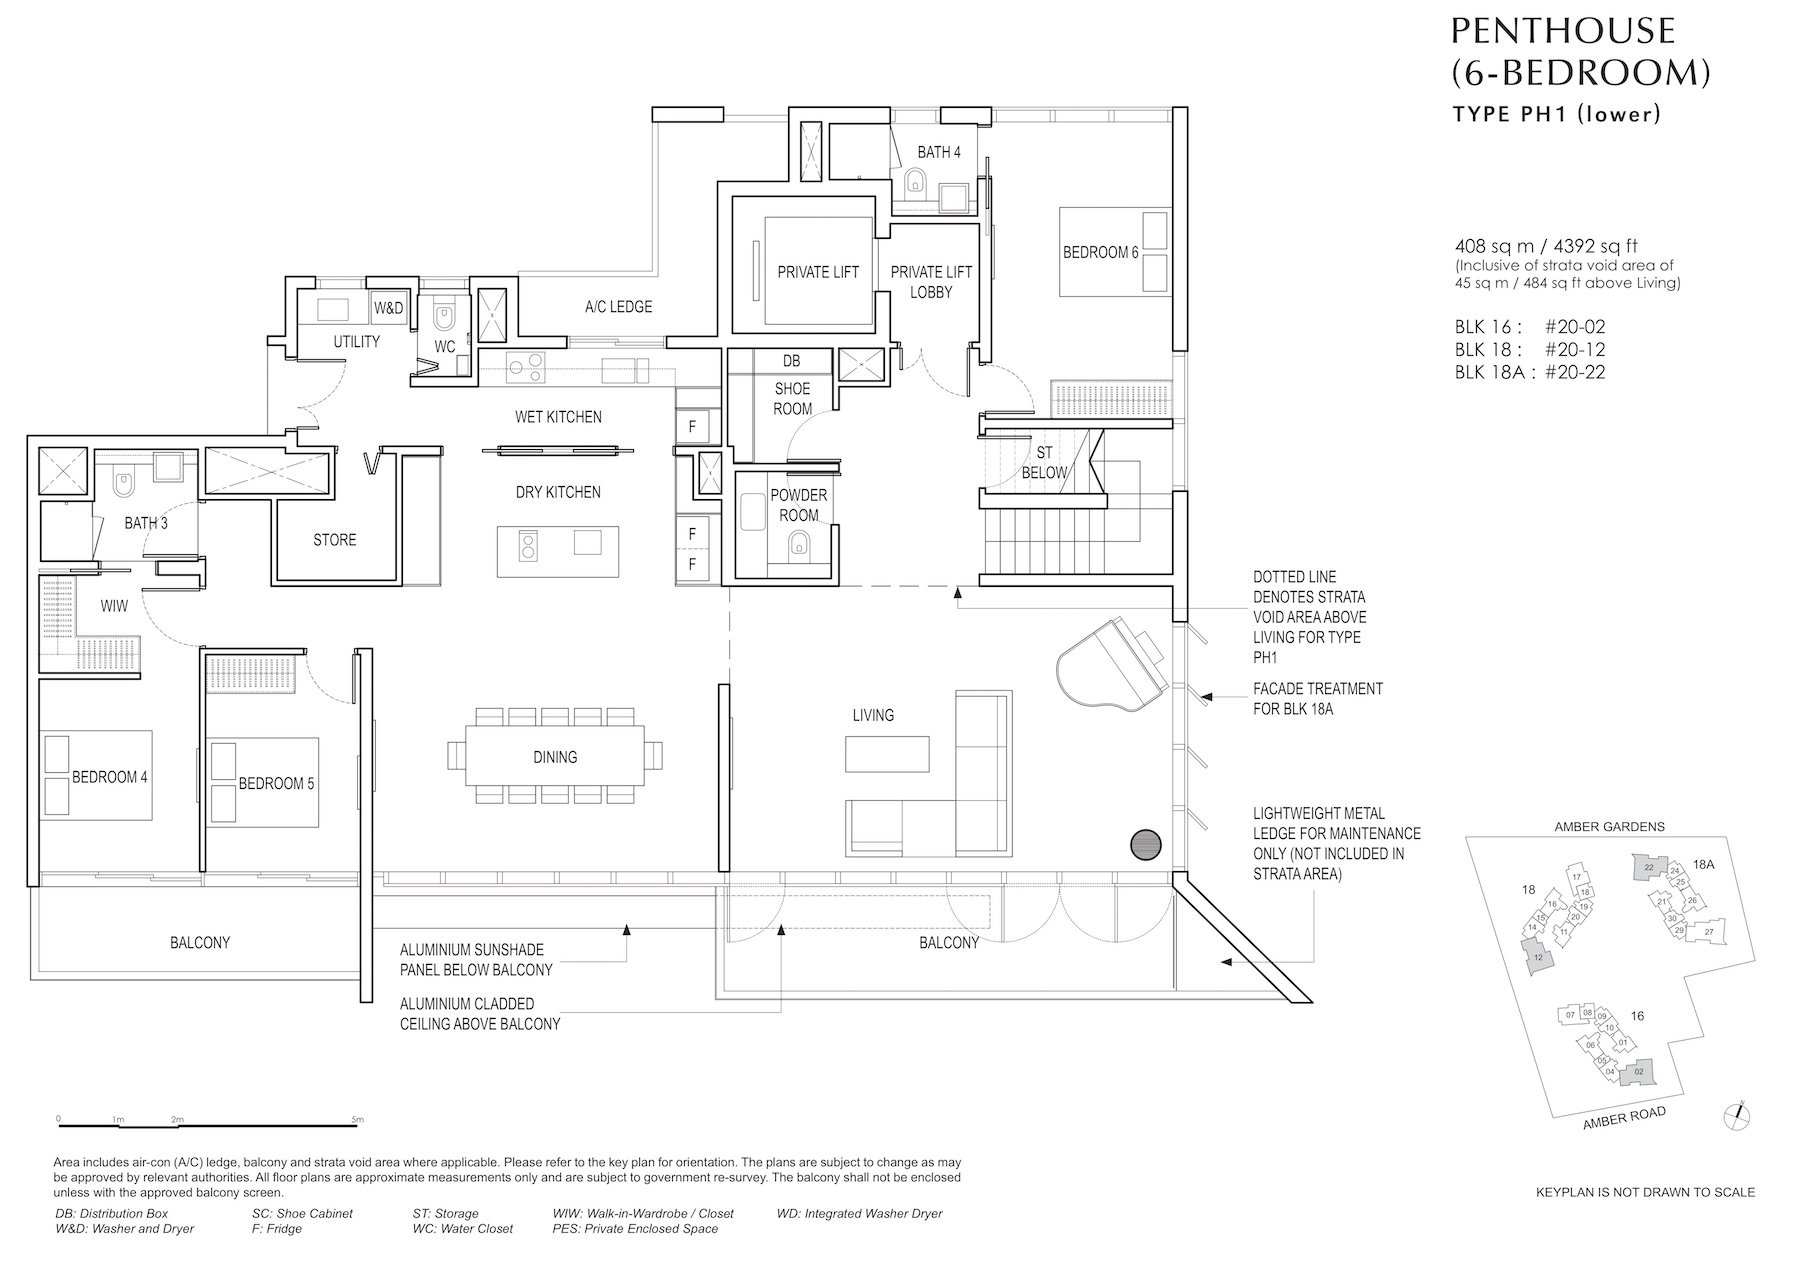 Amber Park 安铂苑 floor plan 6 bedroom penthouse 6卧房复式顶层PH1 lower